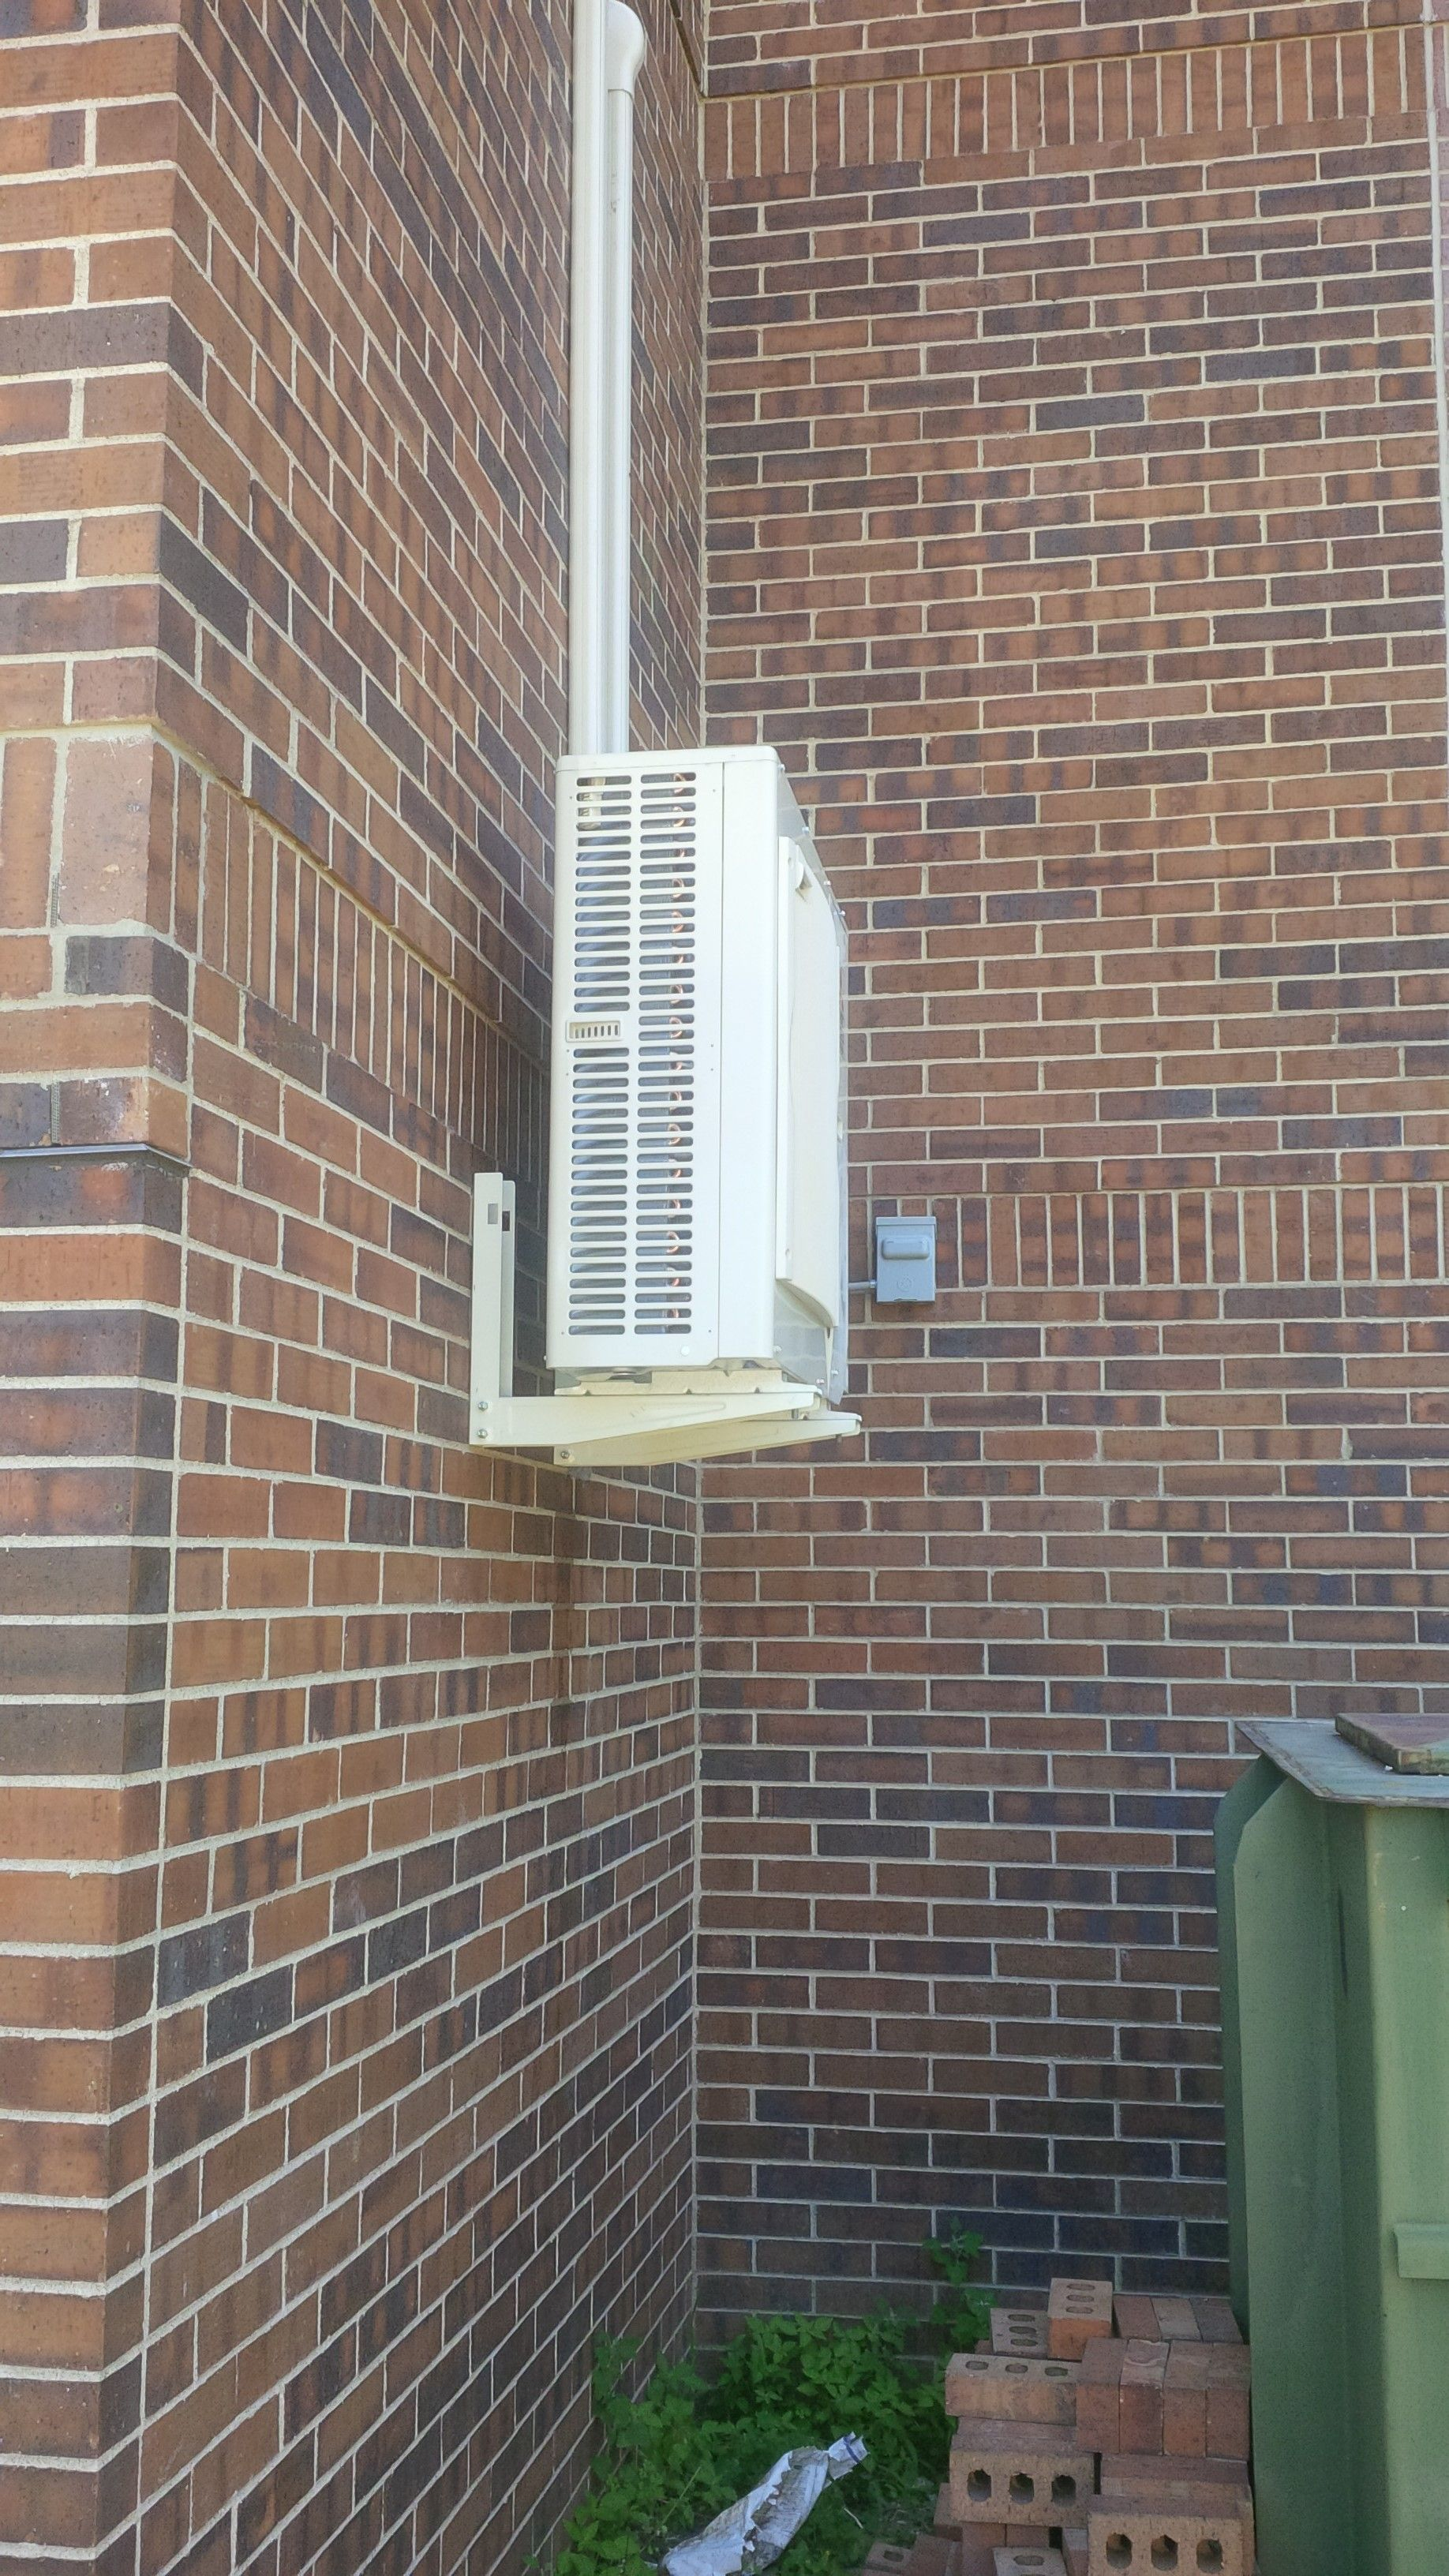 Mitsubishi Condenser Mounted On Bracket In Brick Building Ductless Heating Heating And Cooling Industrial Hvac